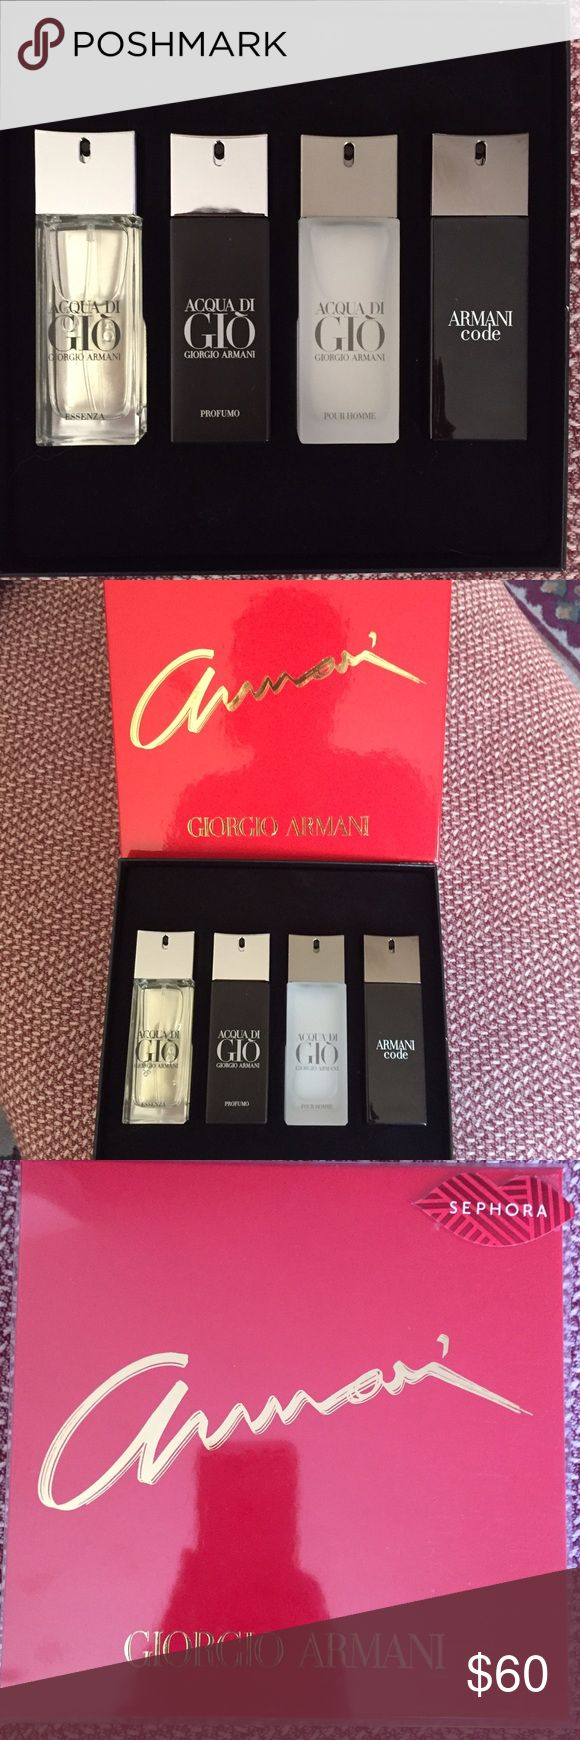 NIB Men's Giorgio Armani Cologne Set NWT NIB never used 4 piece Giorgio Armani Men's colonge gift set from Sephora. An amazing gift or great way to try all of the sexiest smelling colonge. All are 20ml , great for travel. Giorgio Armani Other